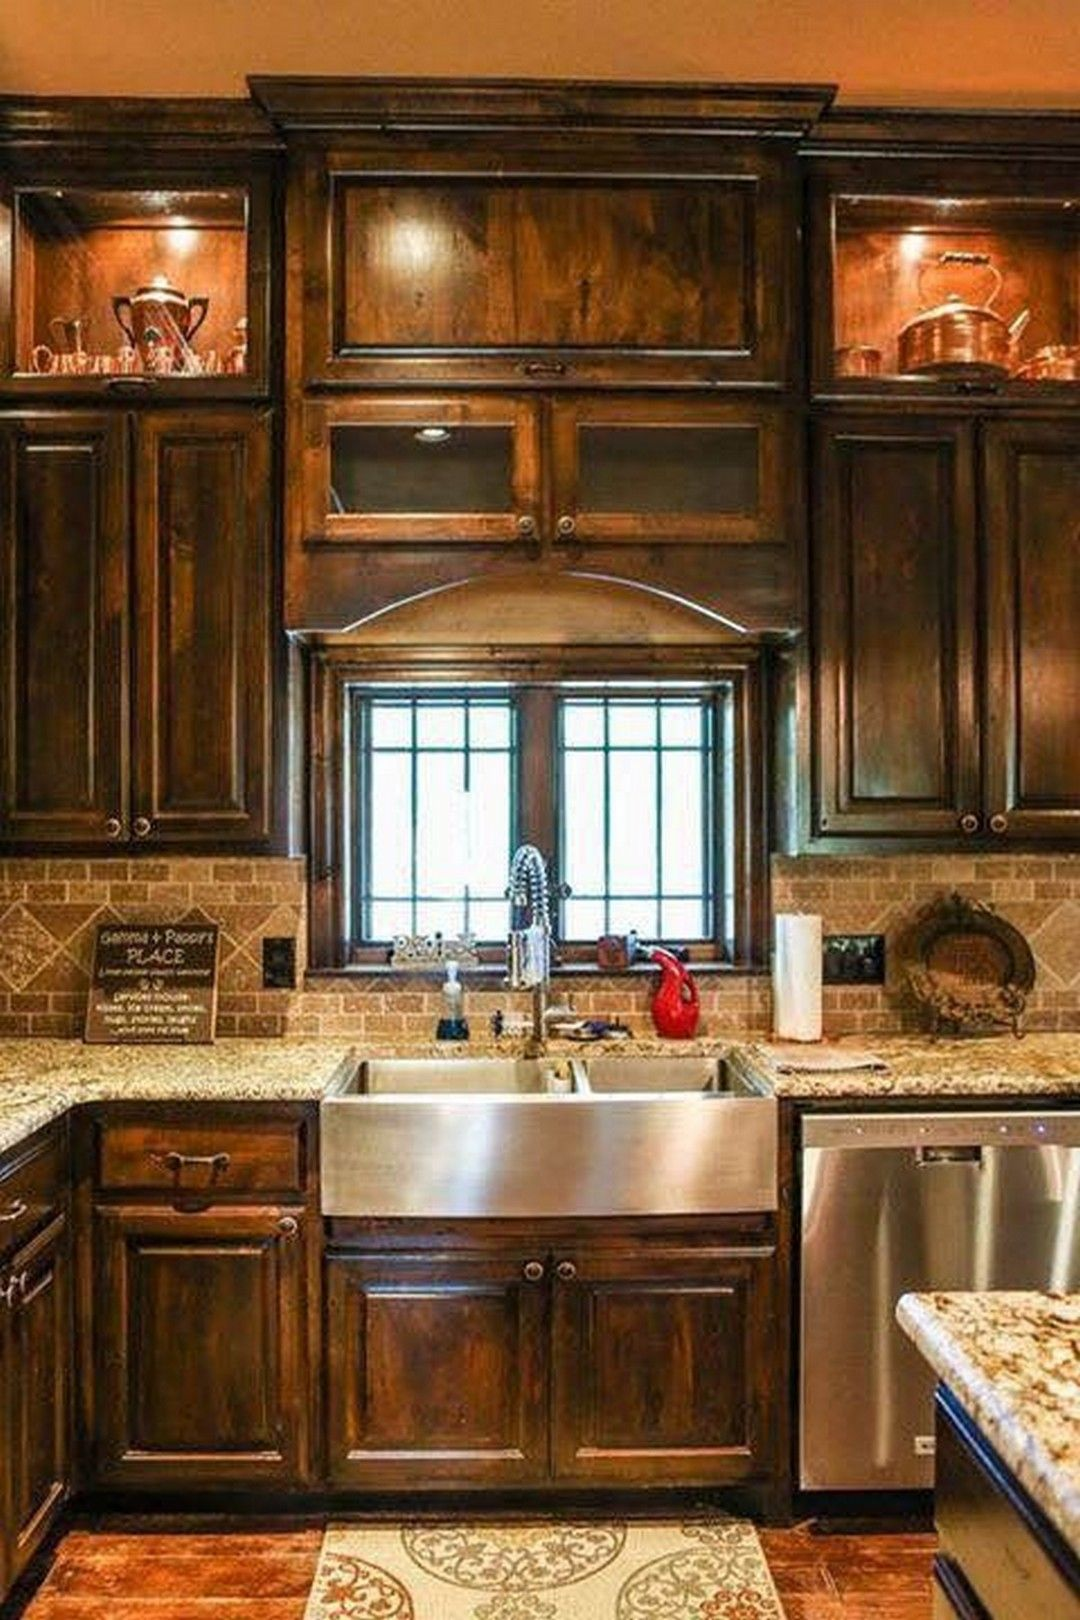 10 cute rustic house kitchen design with images rustic kitchen cabinets rustic kitchen on kitchen decor themes rustic id=47527